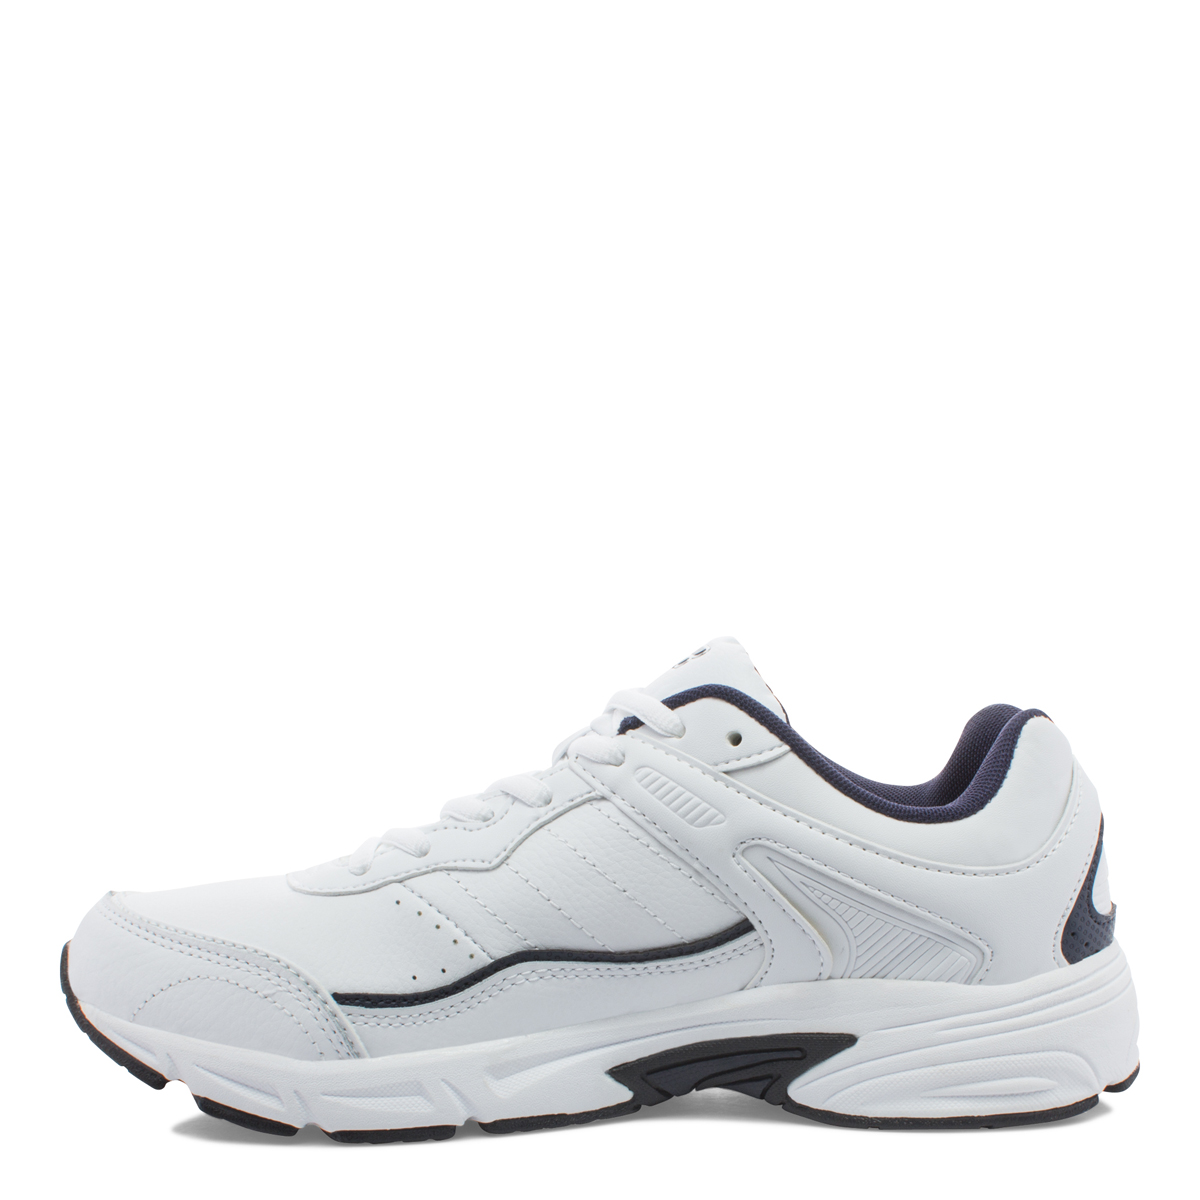 Men's Fila, Memory Sportland Athletic Sneakers by Fila